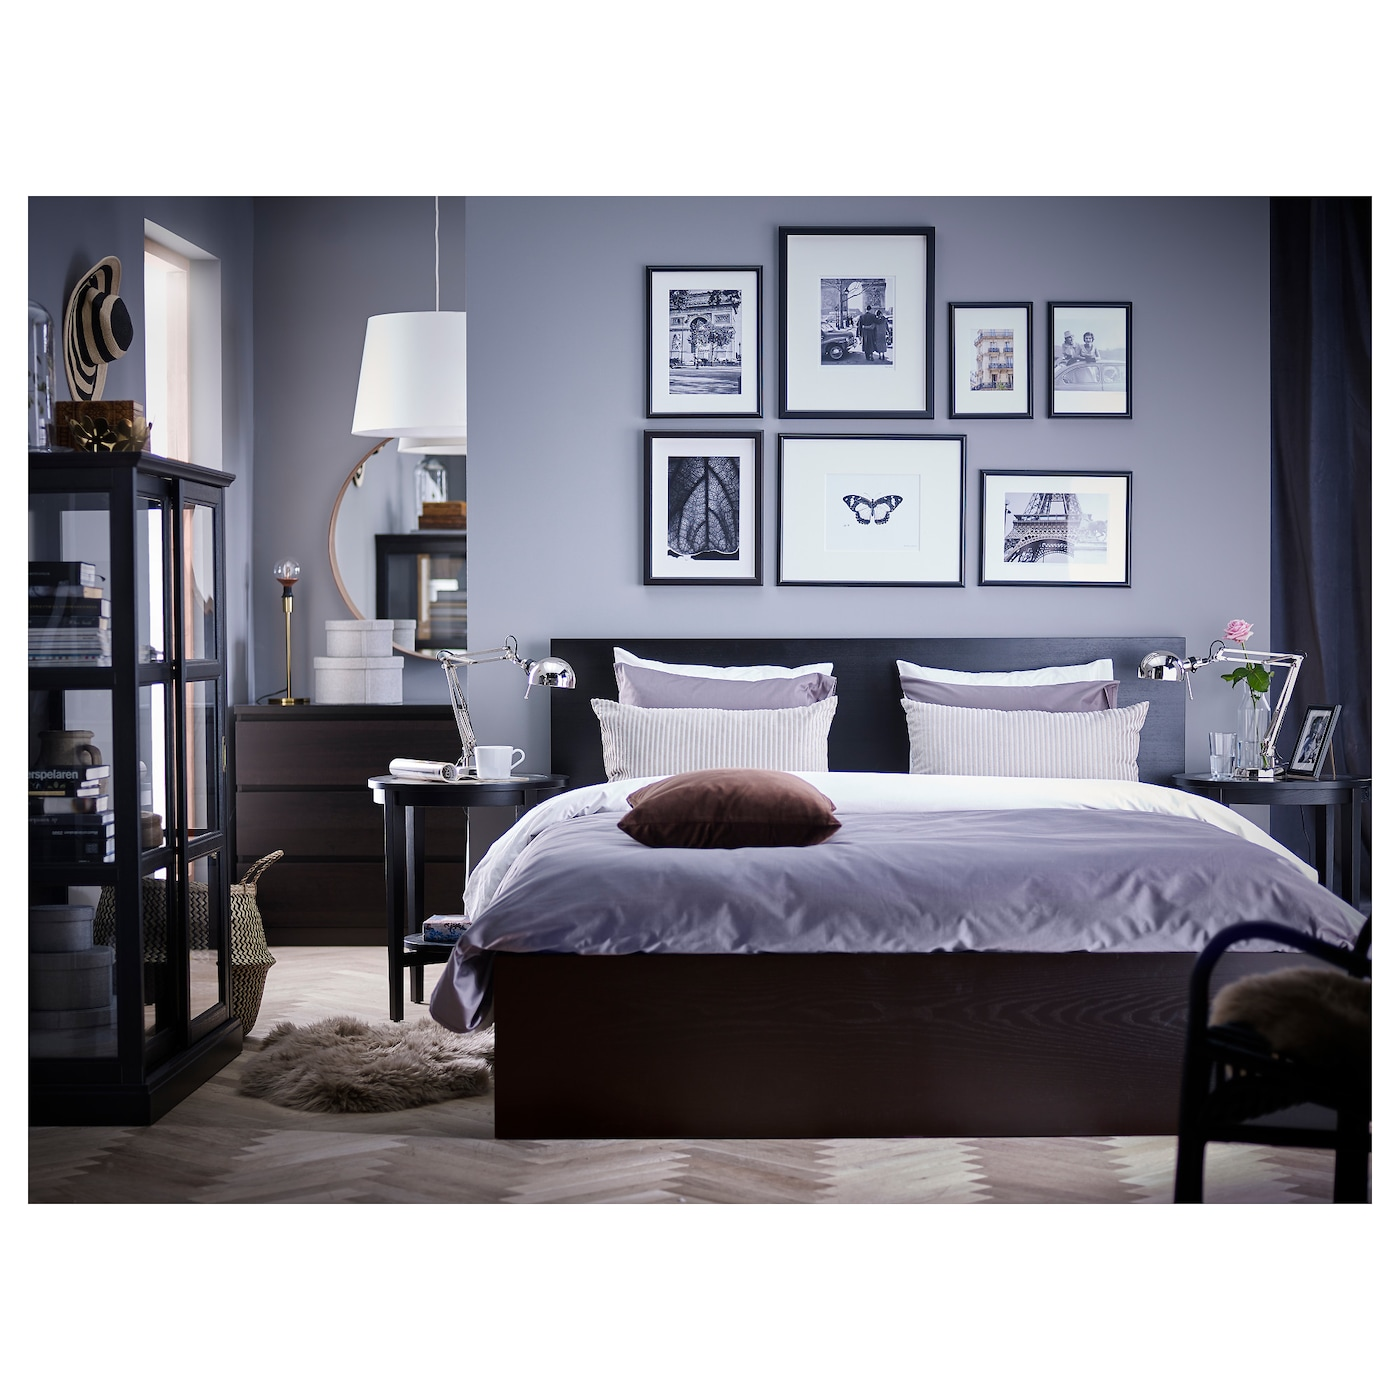 malm cadre de lit haut 2 rangements brun noir 160 x 200 cm ikea. Black Bedroom Furniture Sets. Home Design Ideas